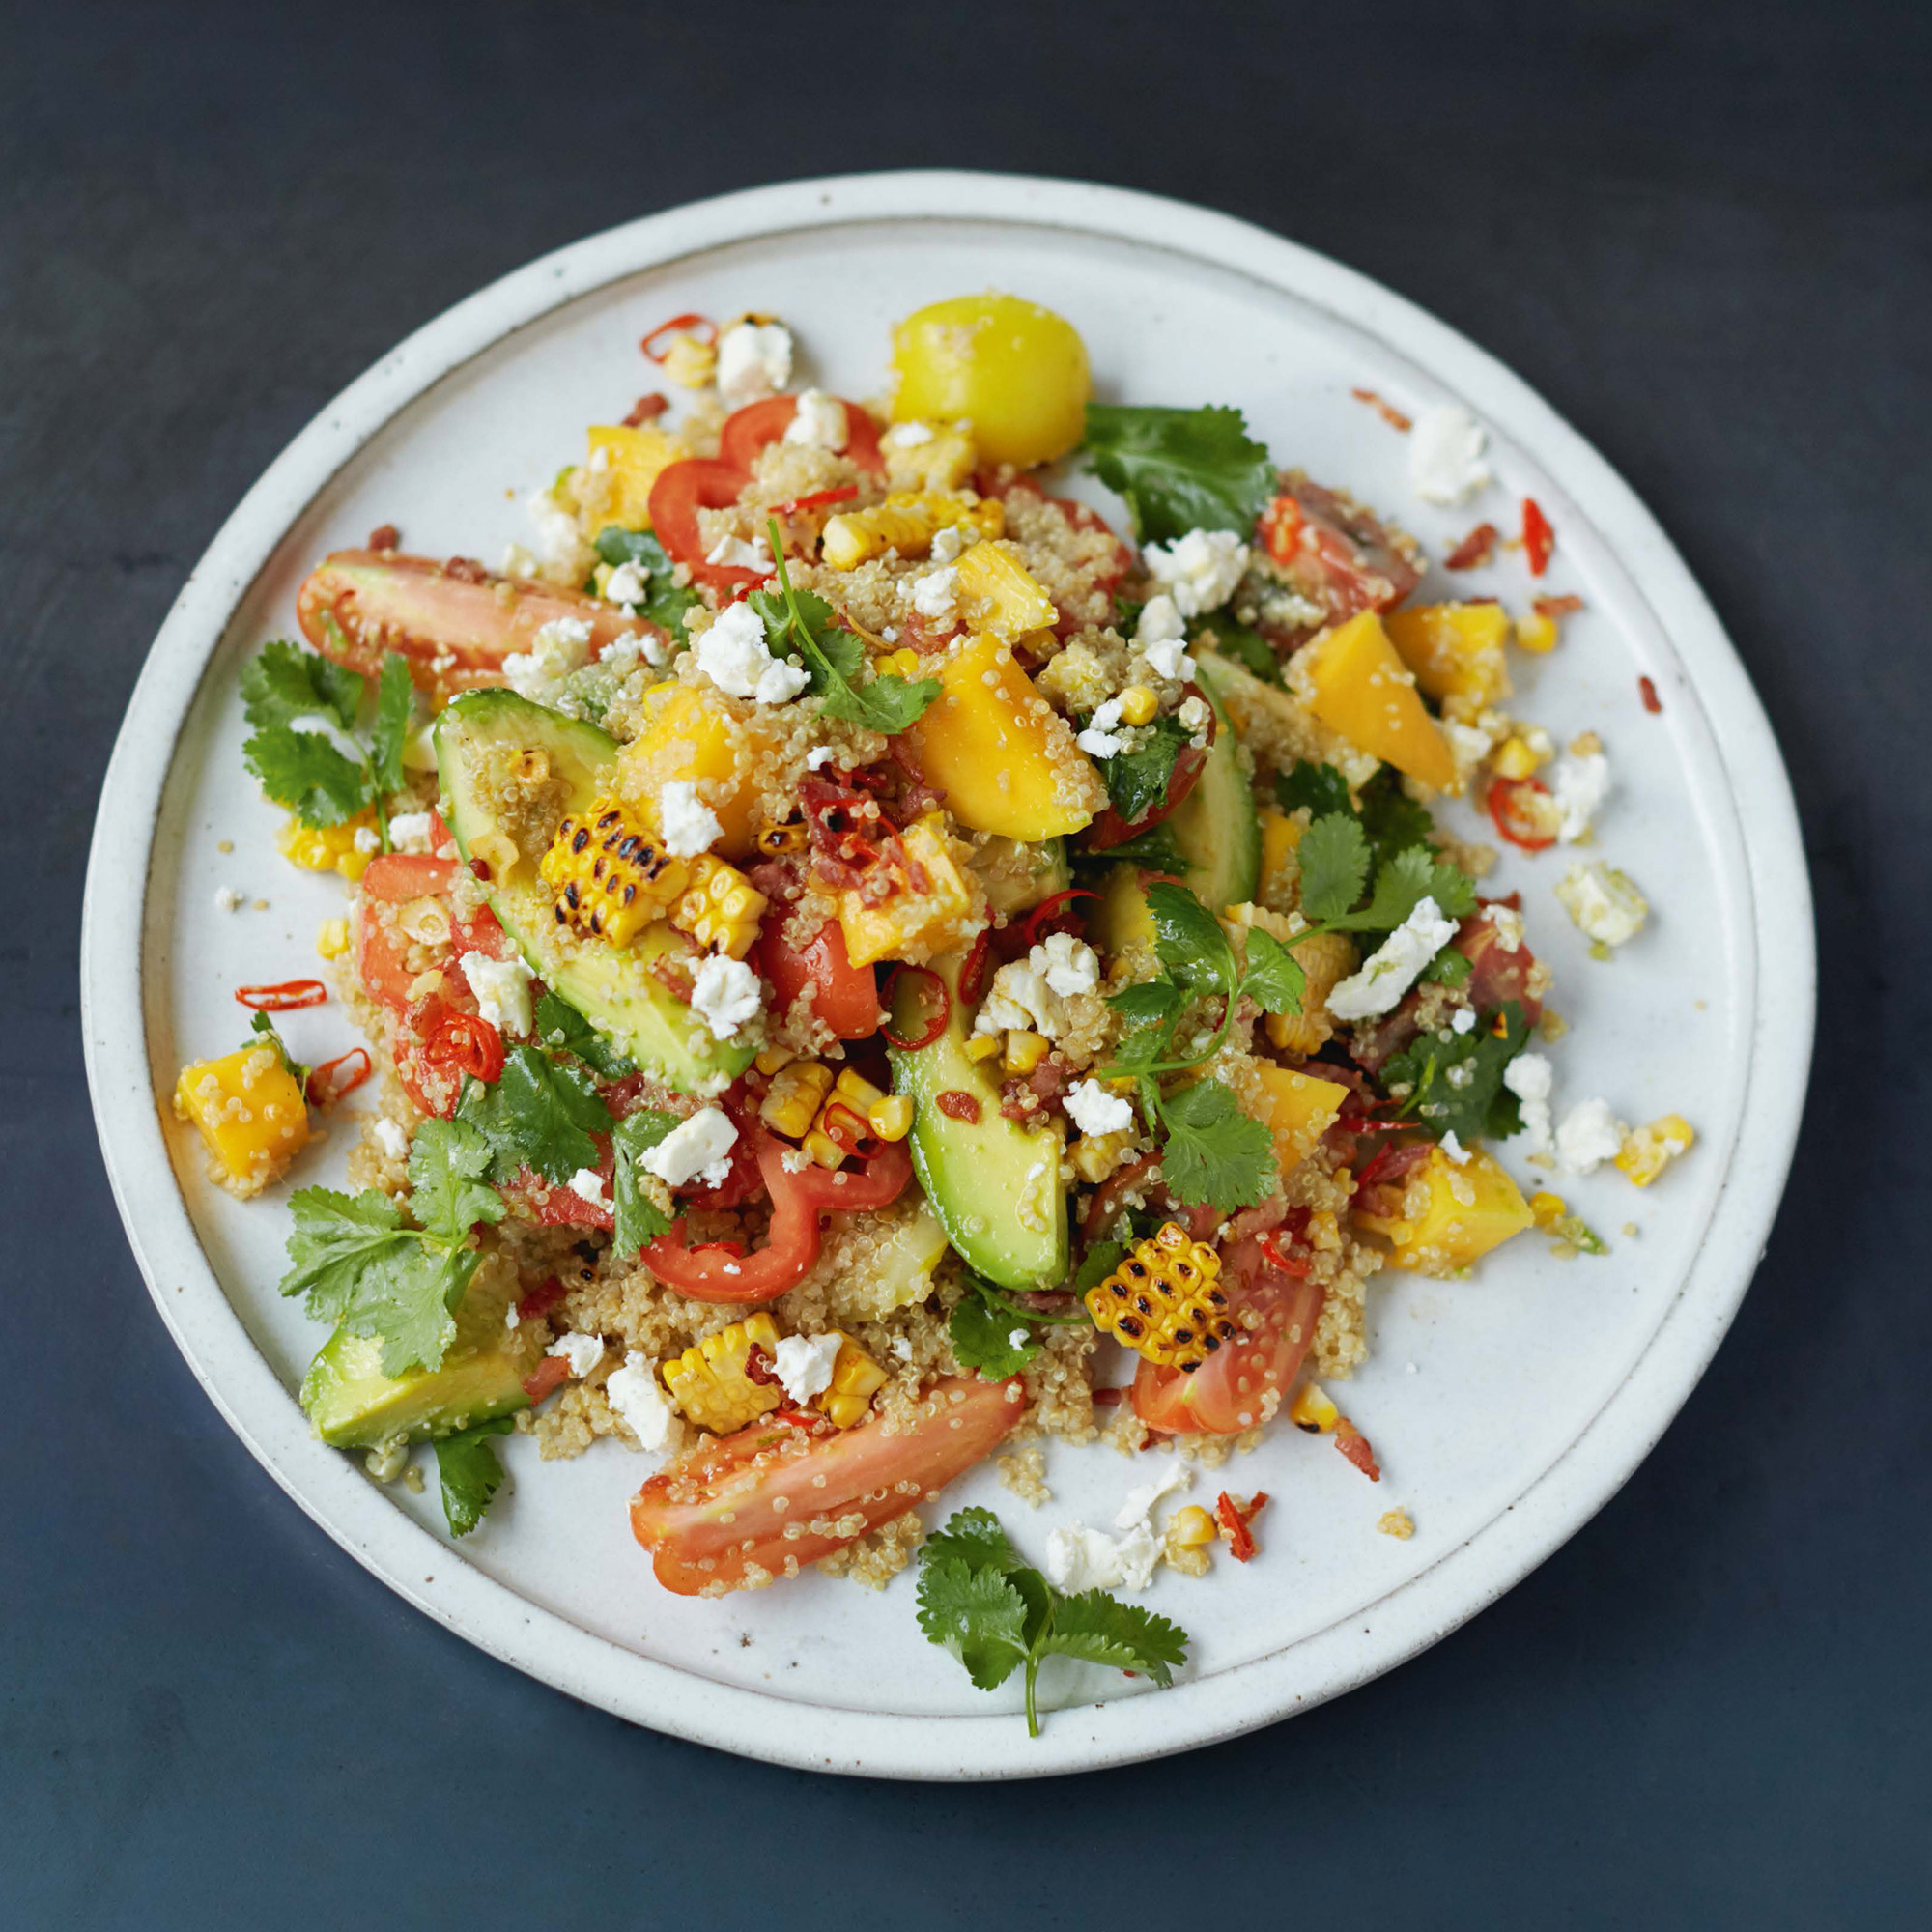 jamie oliver 39 s grilled corn and quinoa salad. Black Bedroom Furniture Sets. Home Design Ideas